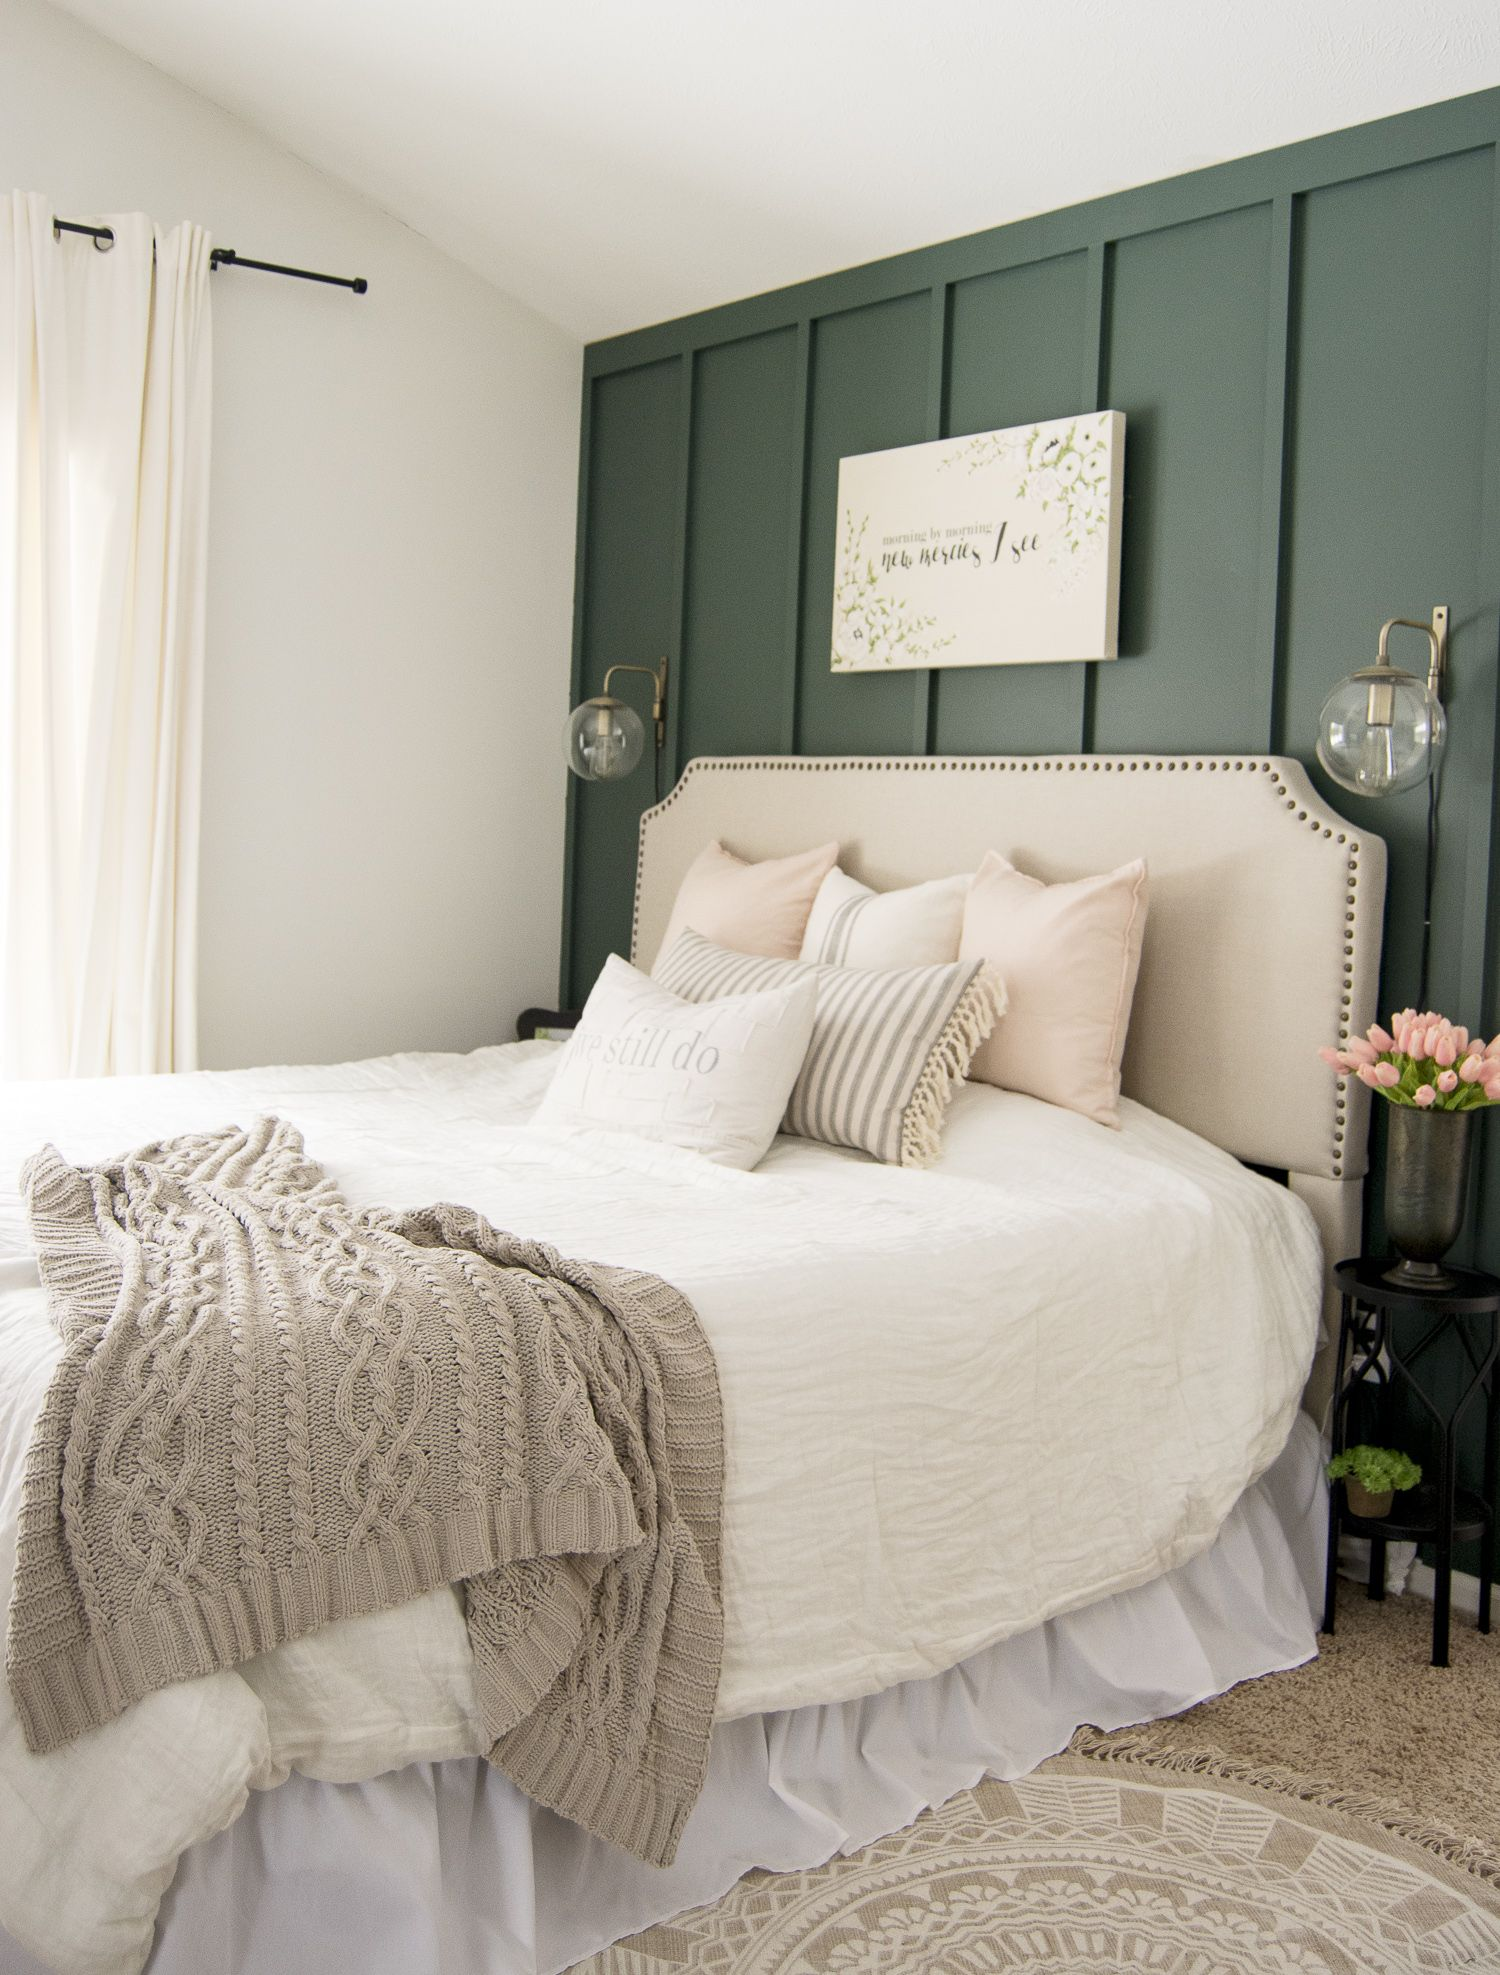 Key Elements Of A Modern Farmhouse Bedroom Home Bedroom Bedroom Interior Modern Farmhouse Bedroom